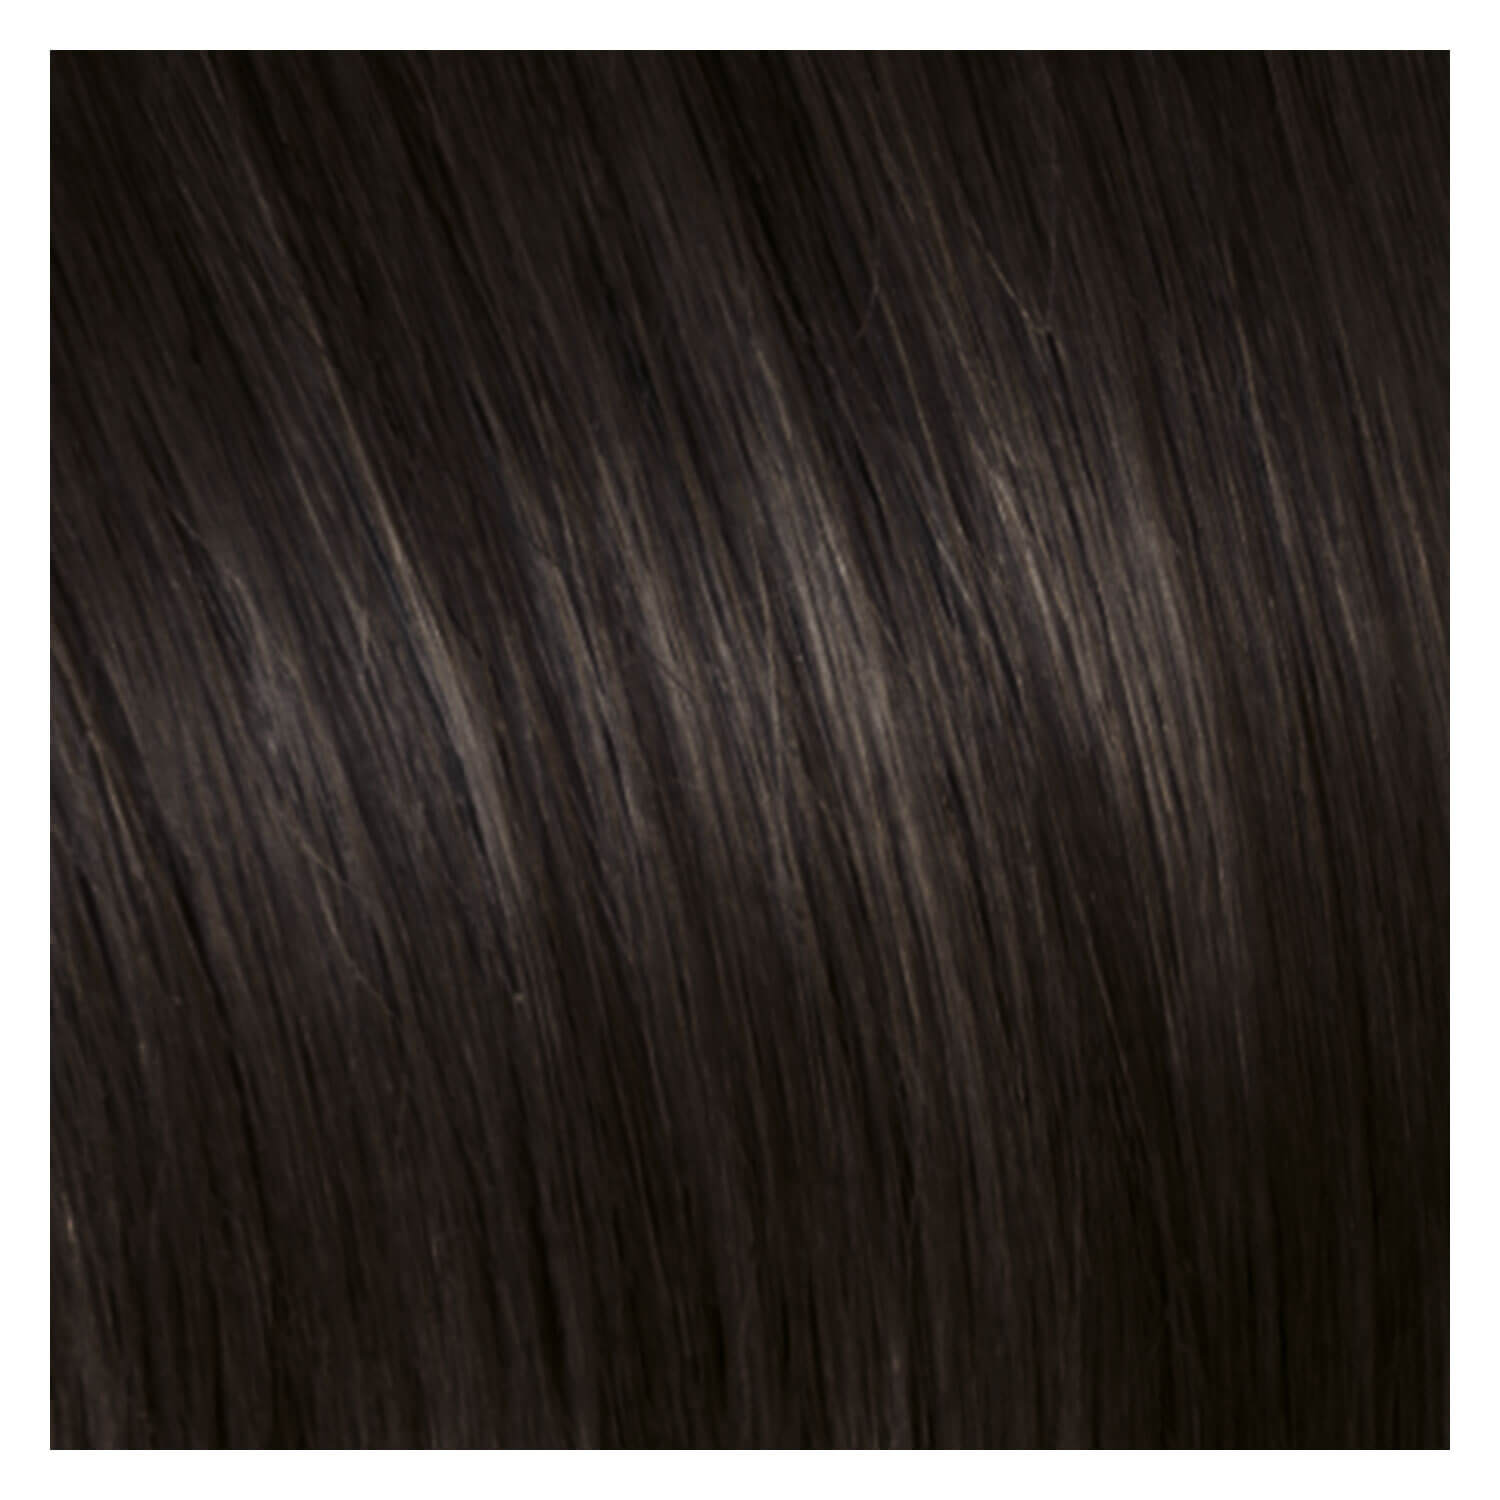 SHE Clip In-System Hair Extensions - 9-teiliges Set 4 Kastanienbraun 50/55cm